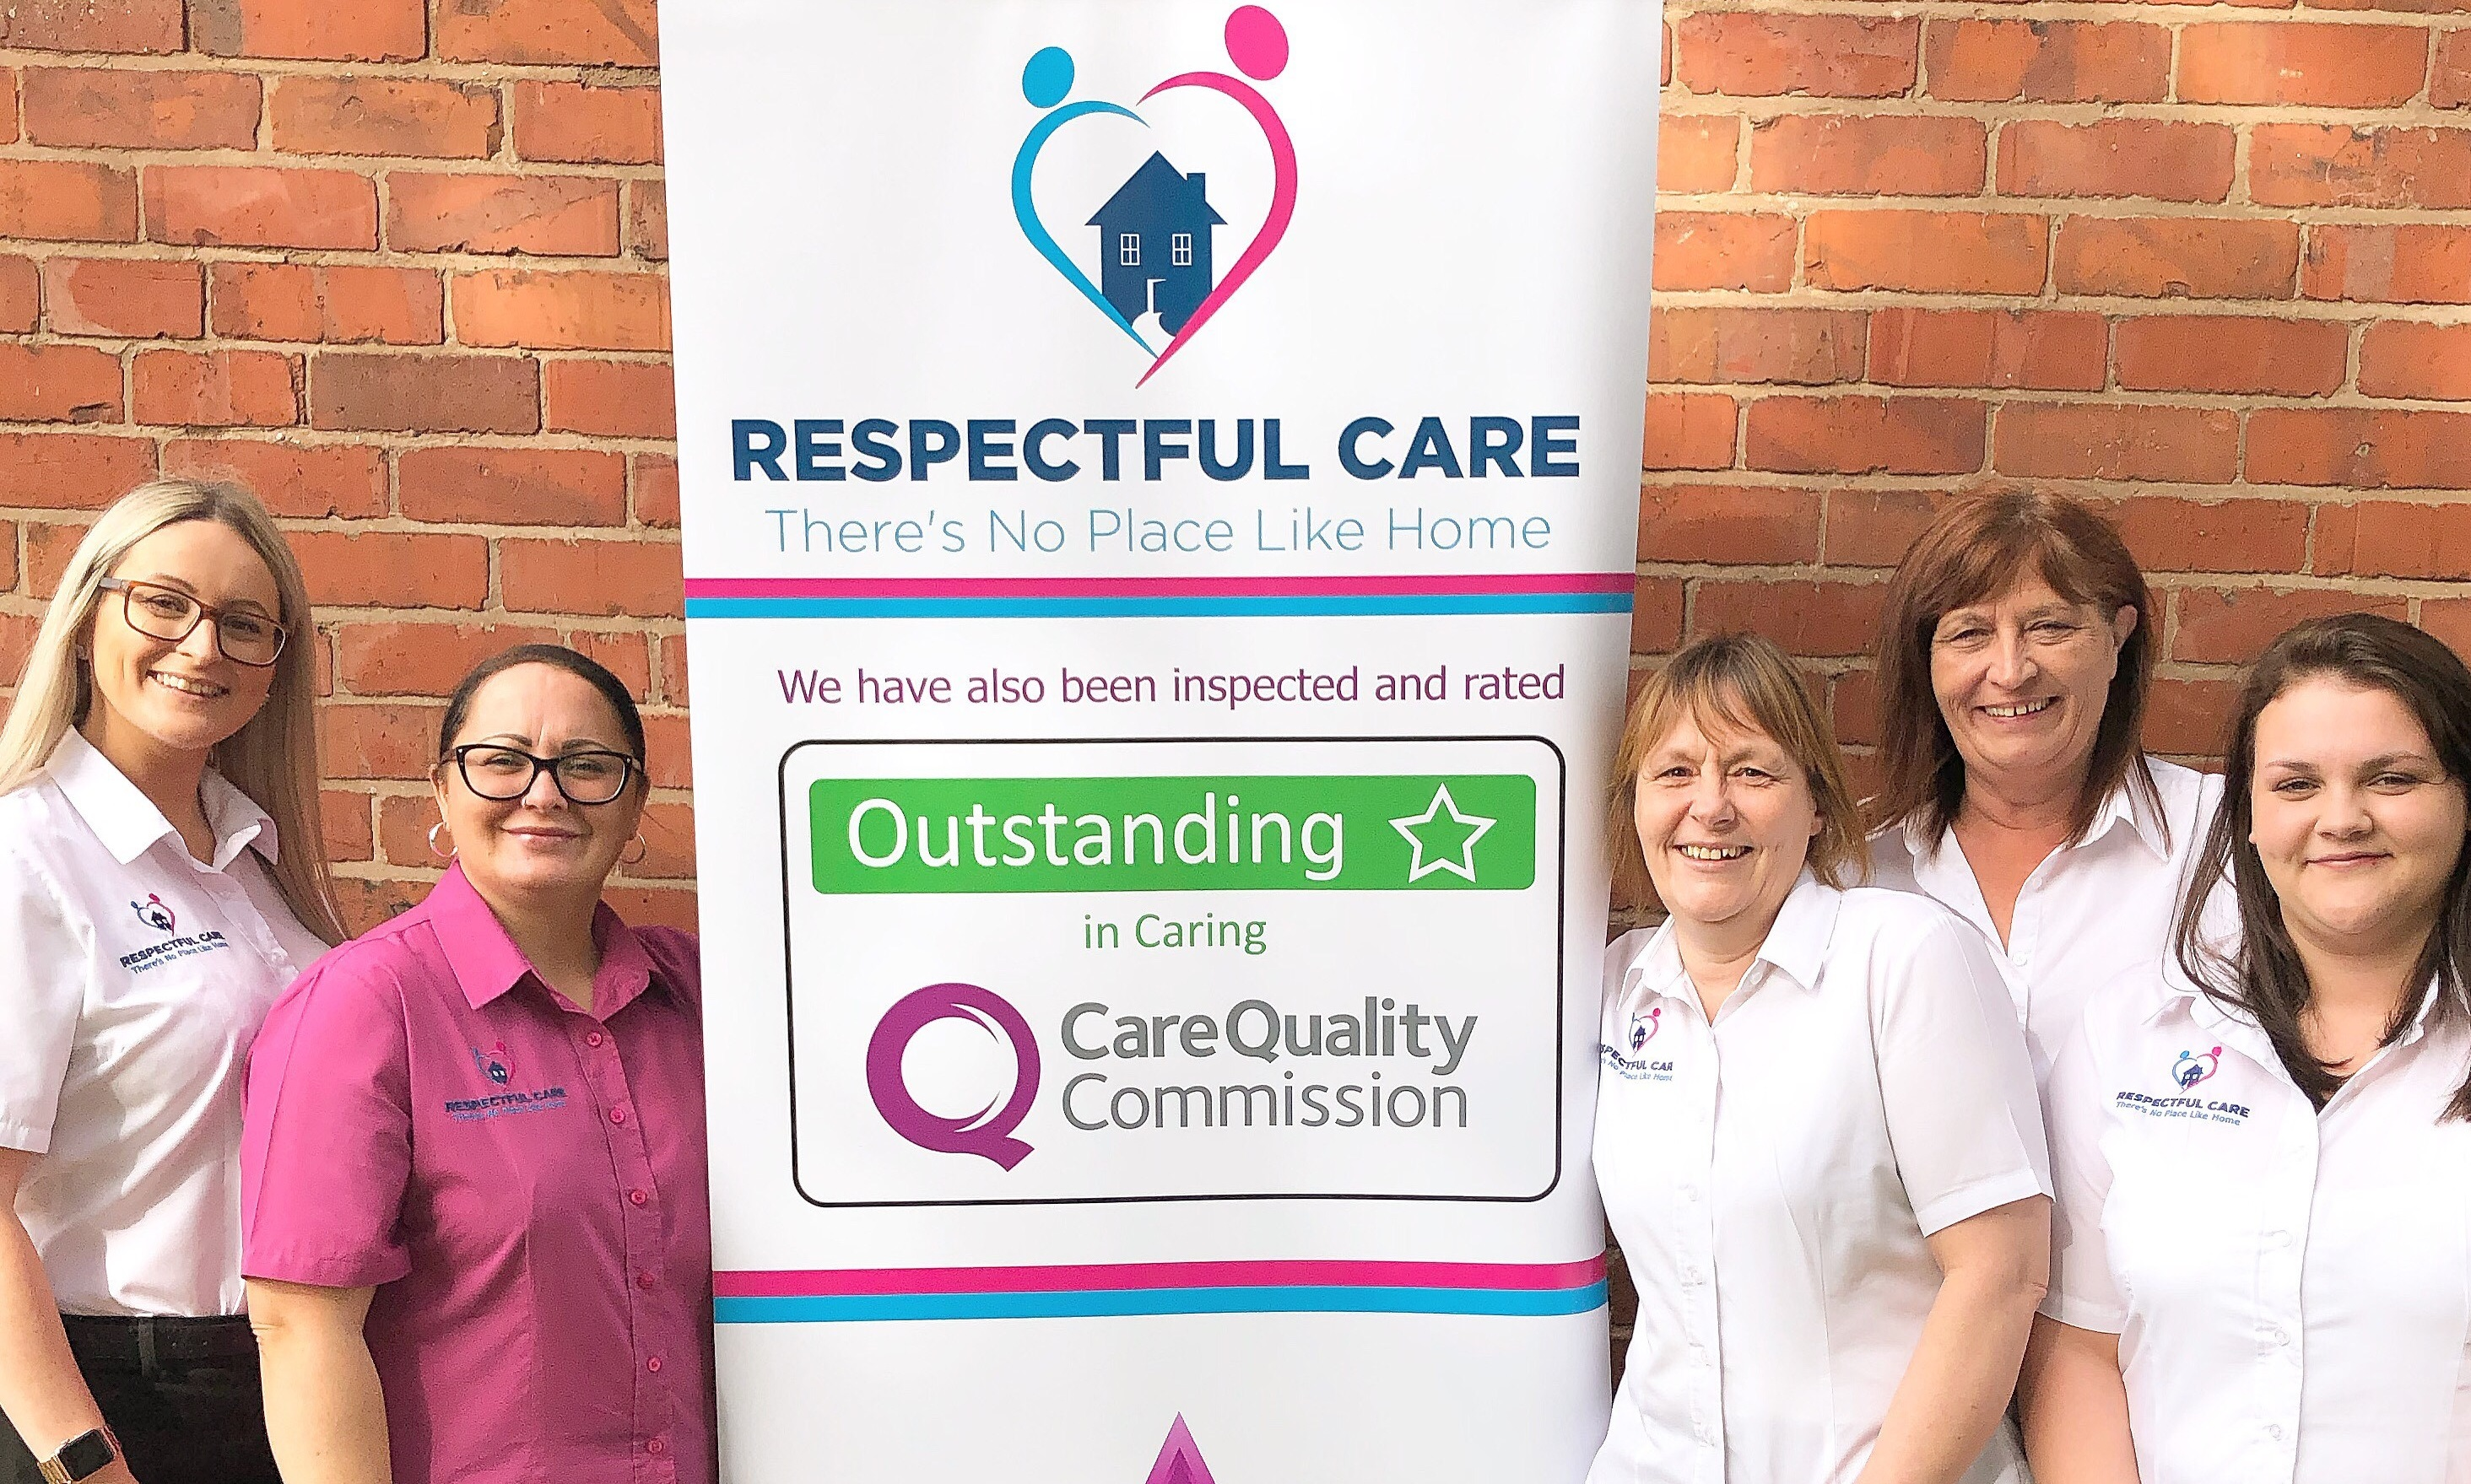 Caring company proud of outstanding recognition